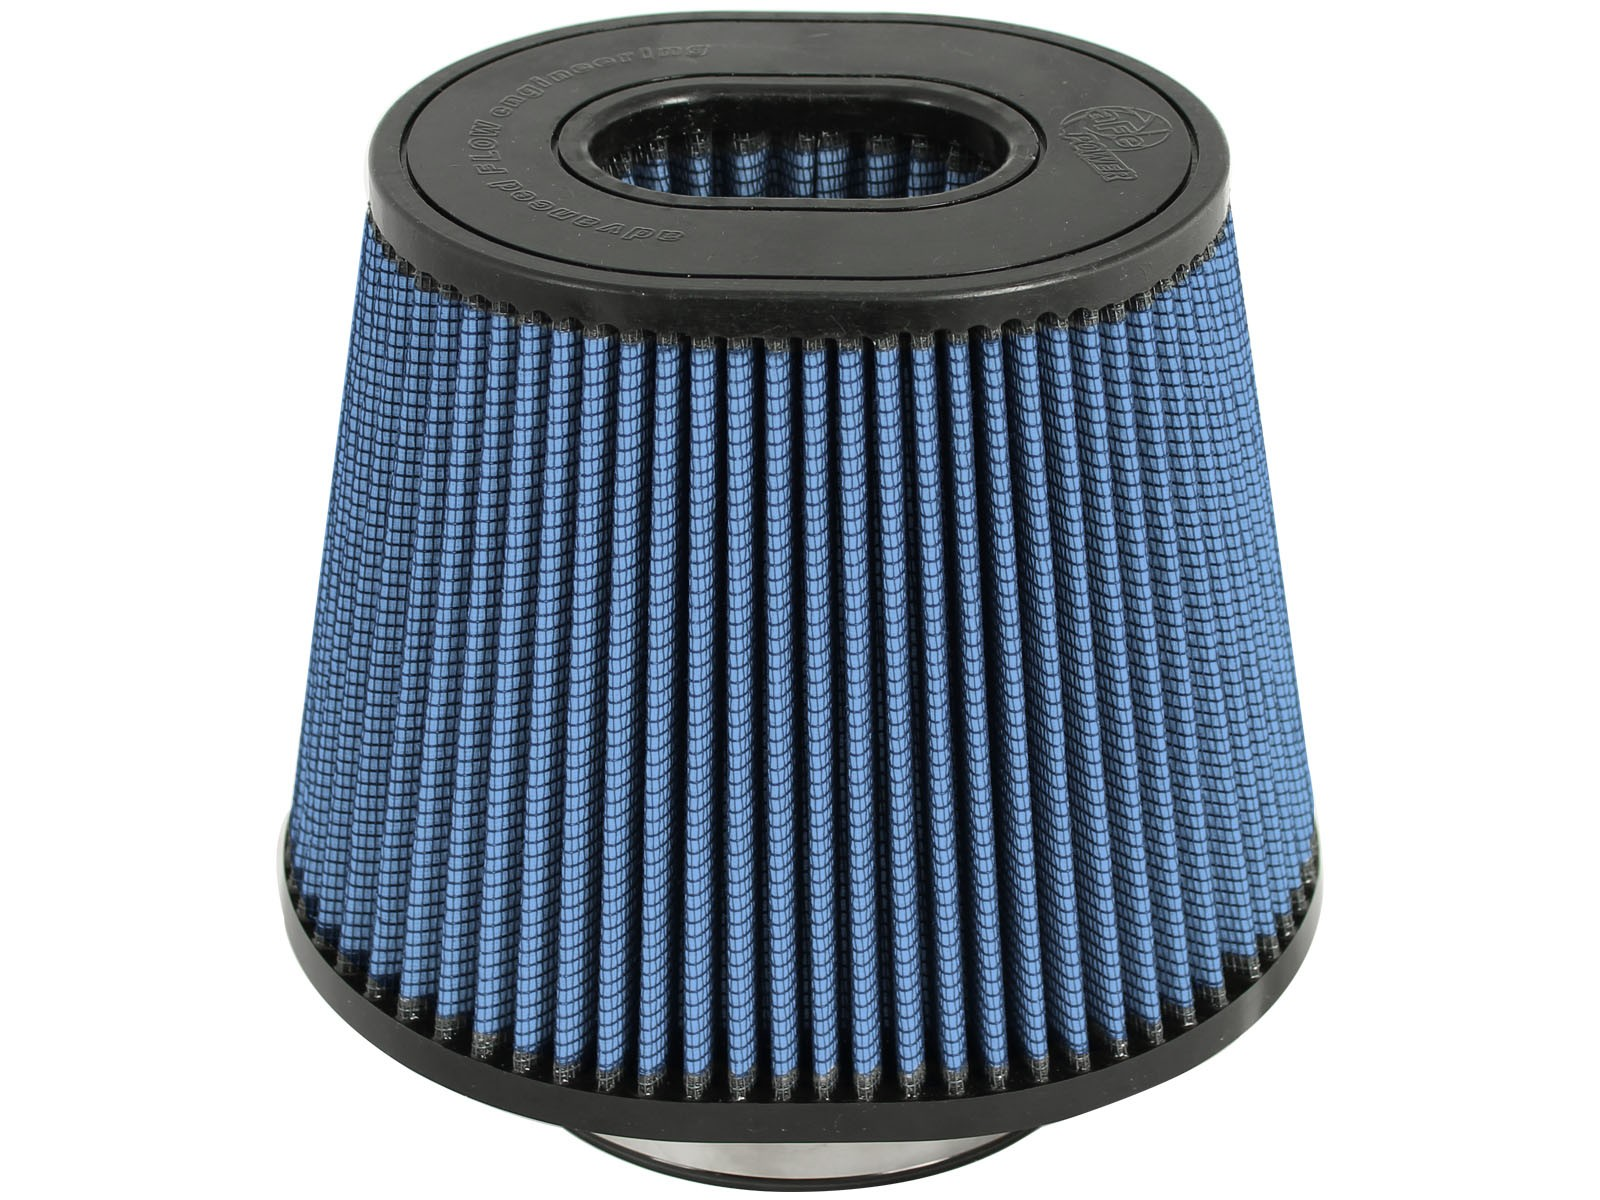 aFe POWER 24-91064 Magnum FLOW Pro 5R Air Filter